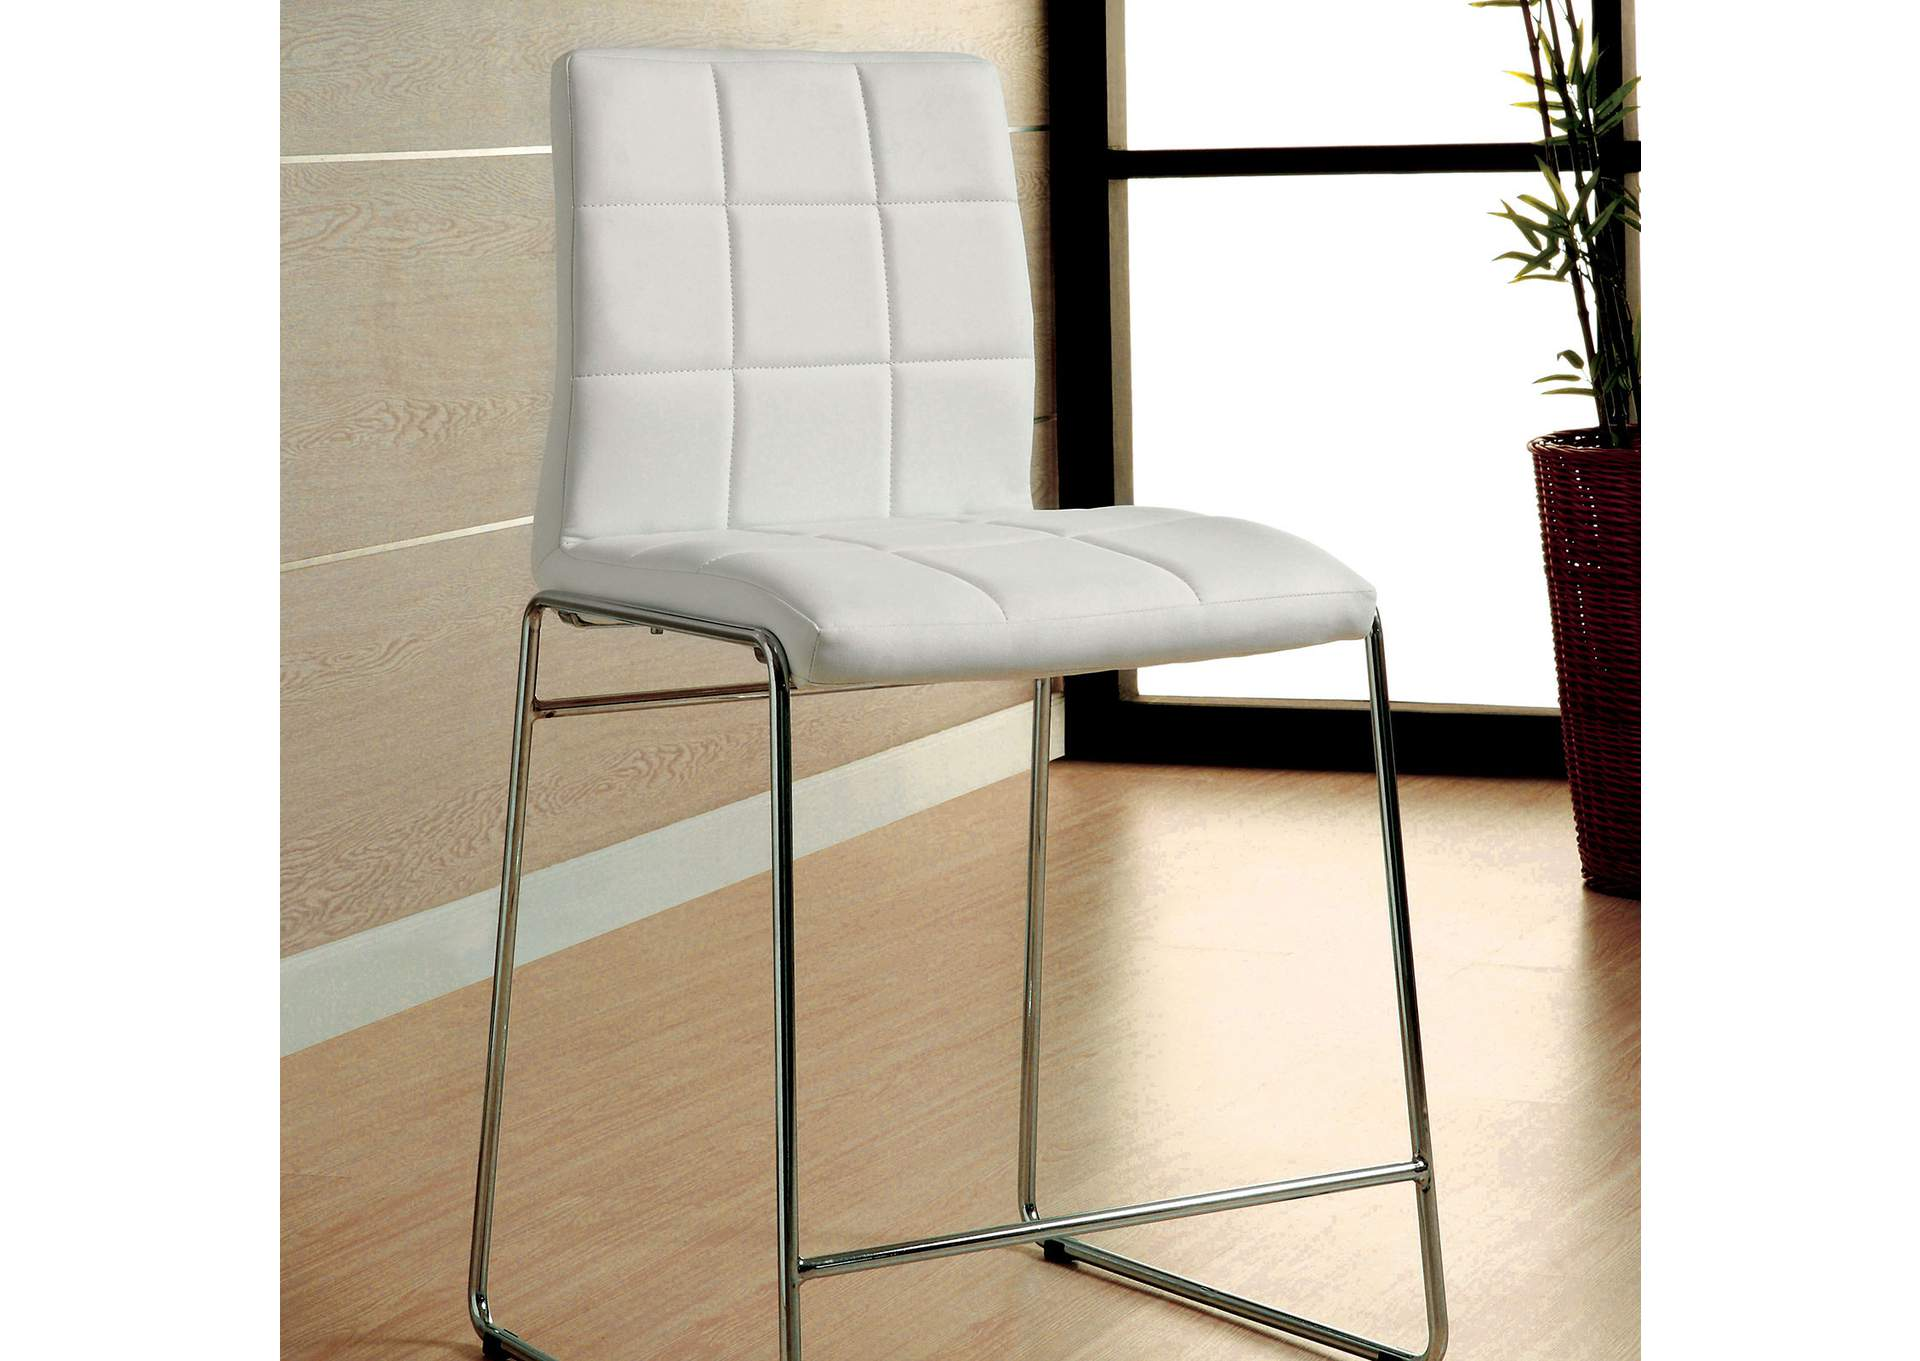 brothers fine furniture kona ii white counter height chair set of 2